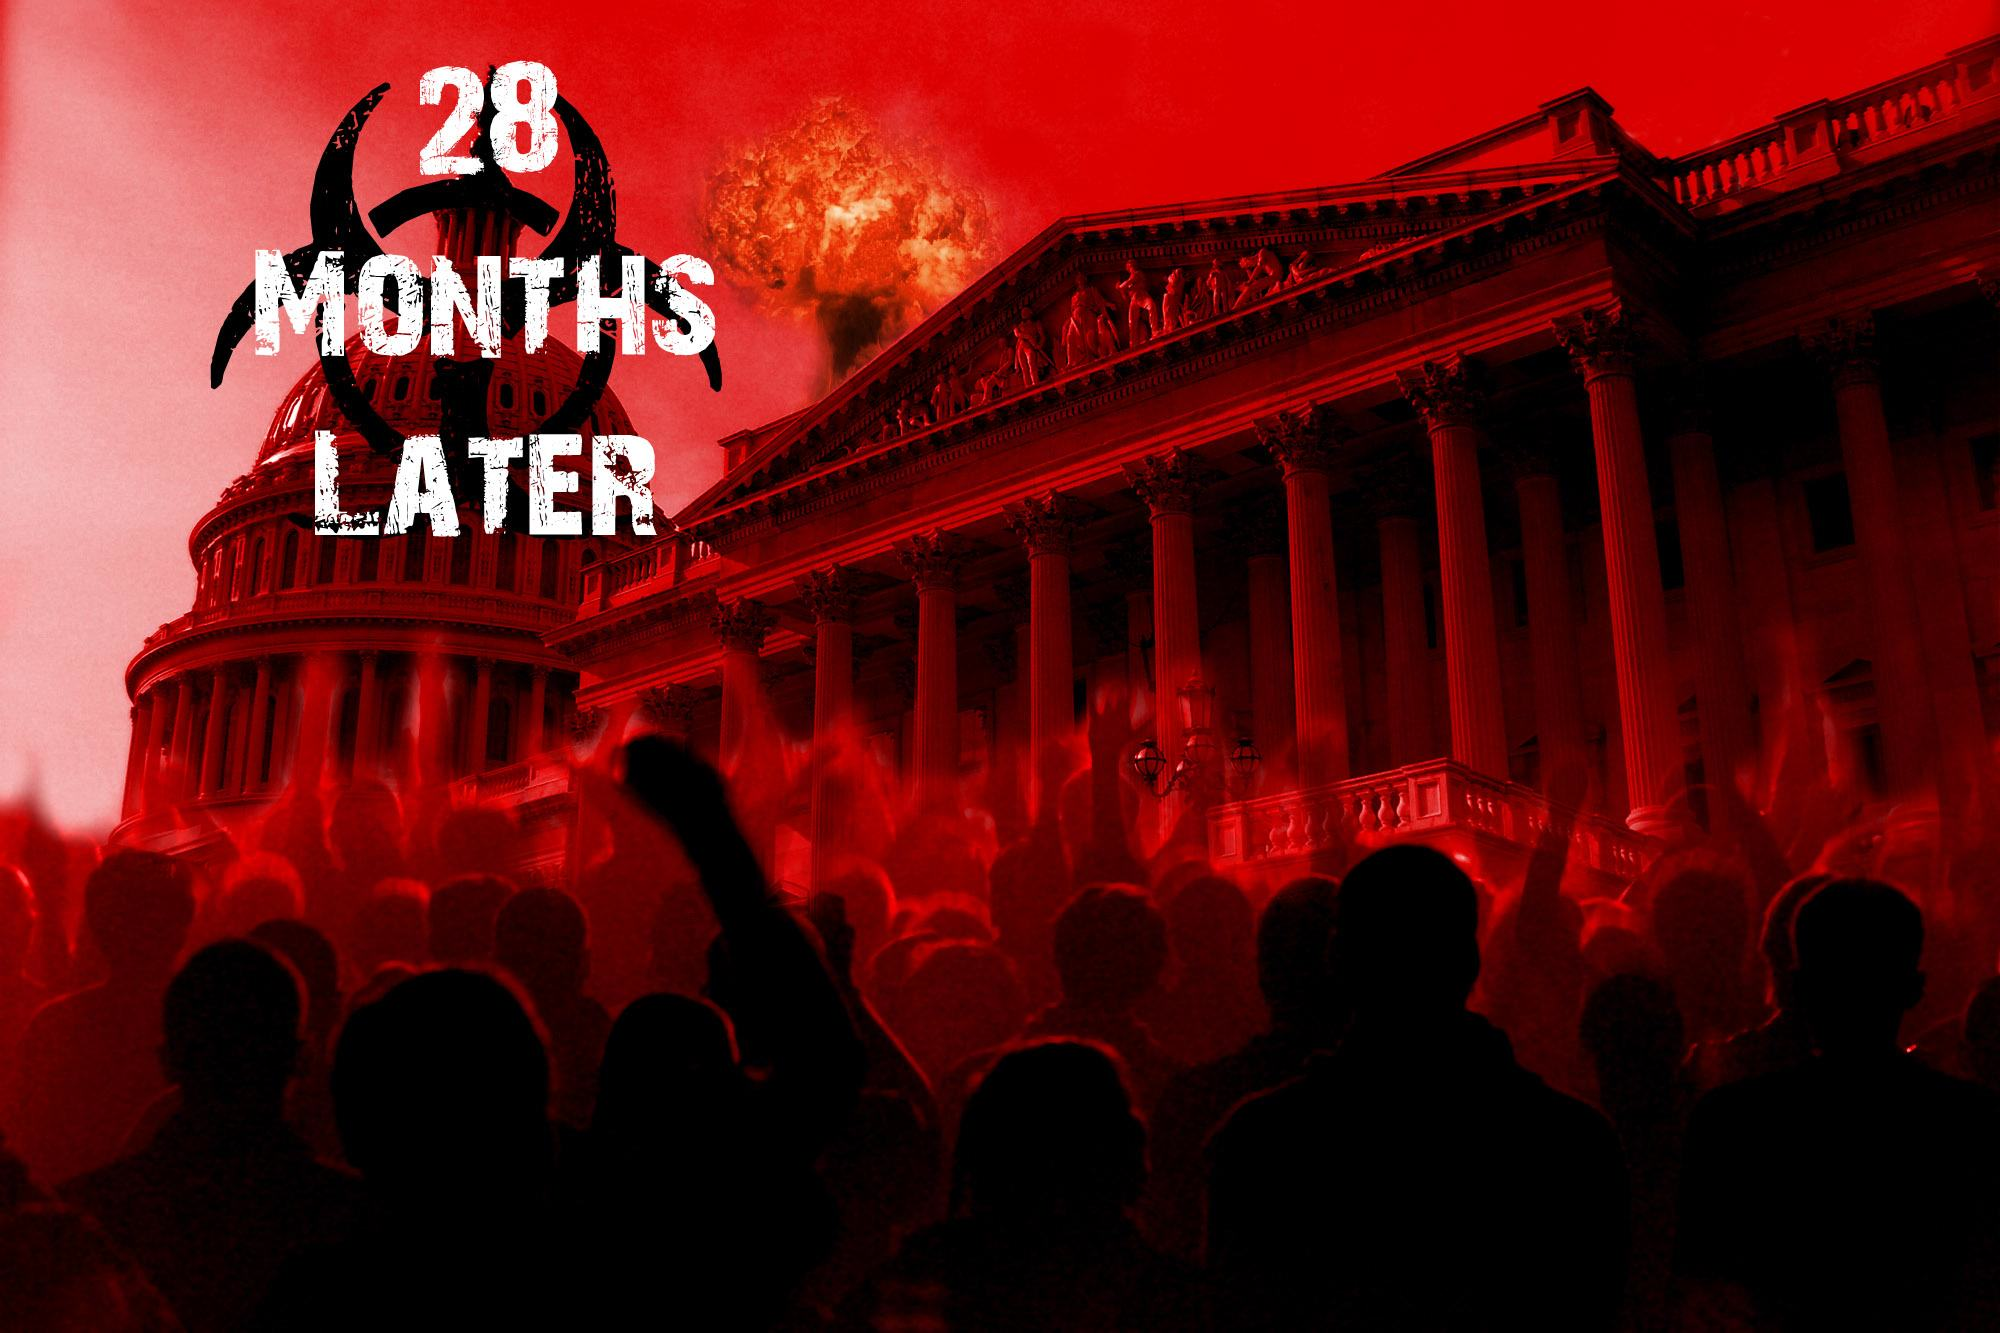 New Zombie Sequel 28 Months Later Is Coming 28 Months Later by Konton Kyoudai